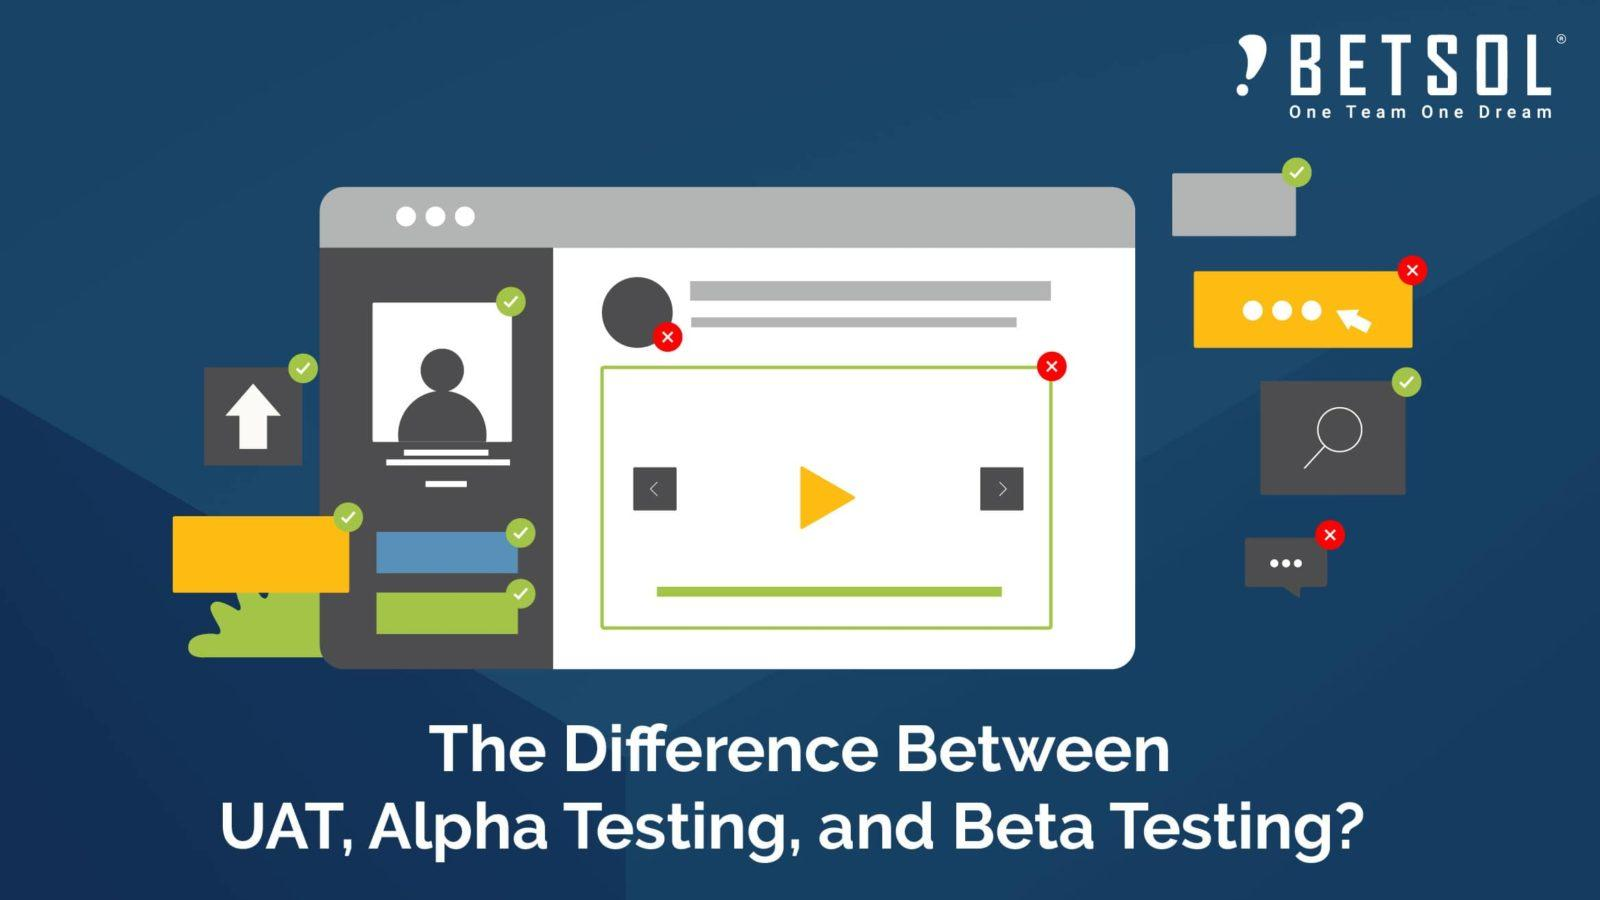 The Difference Between UAT, Alpha Testing And Beta Testing | Betsol